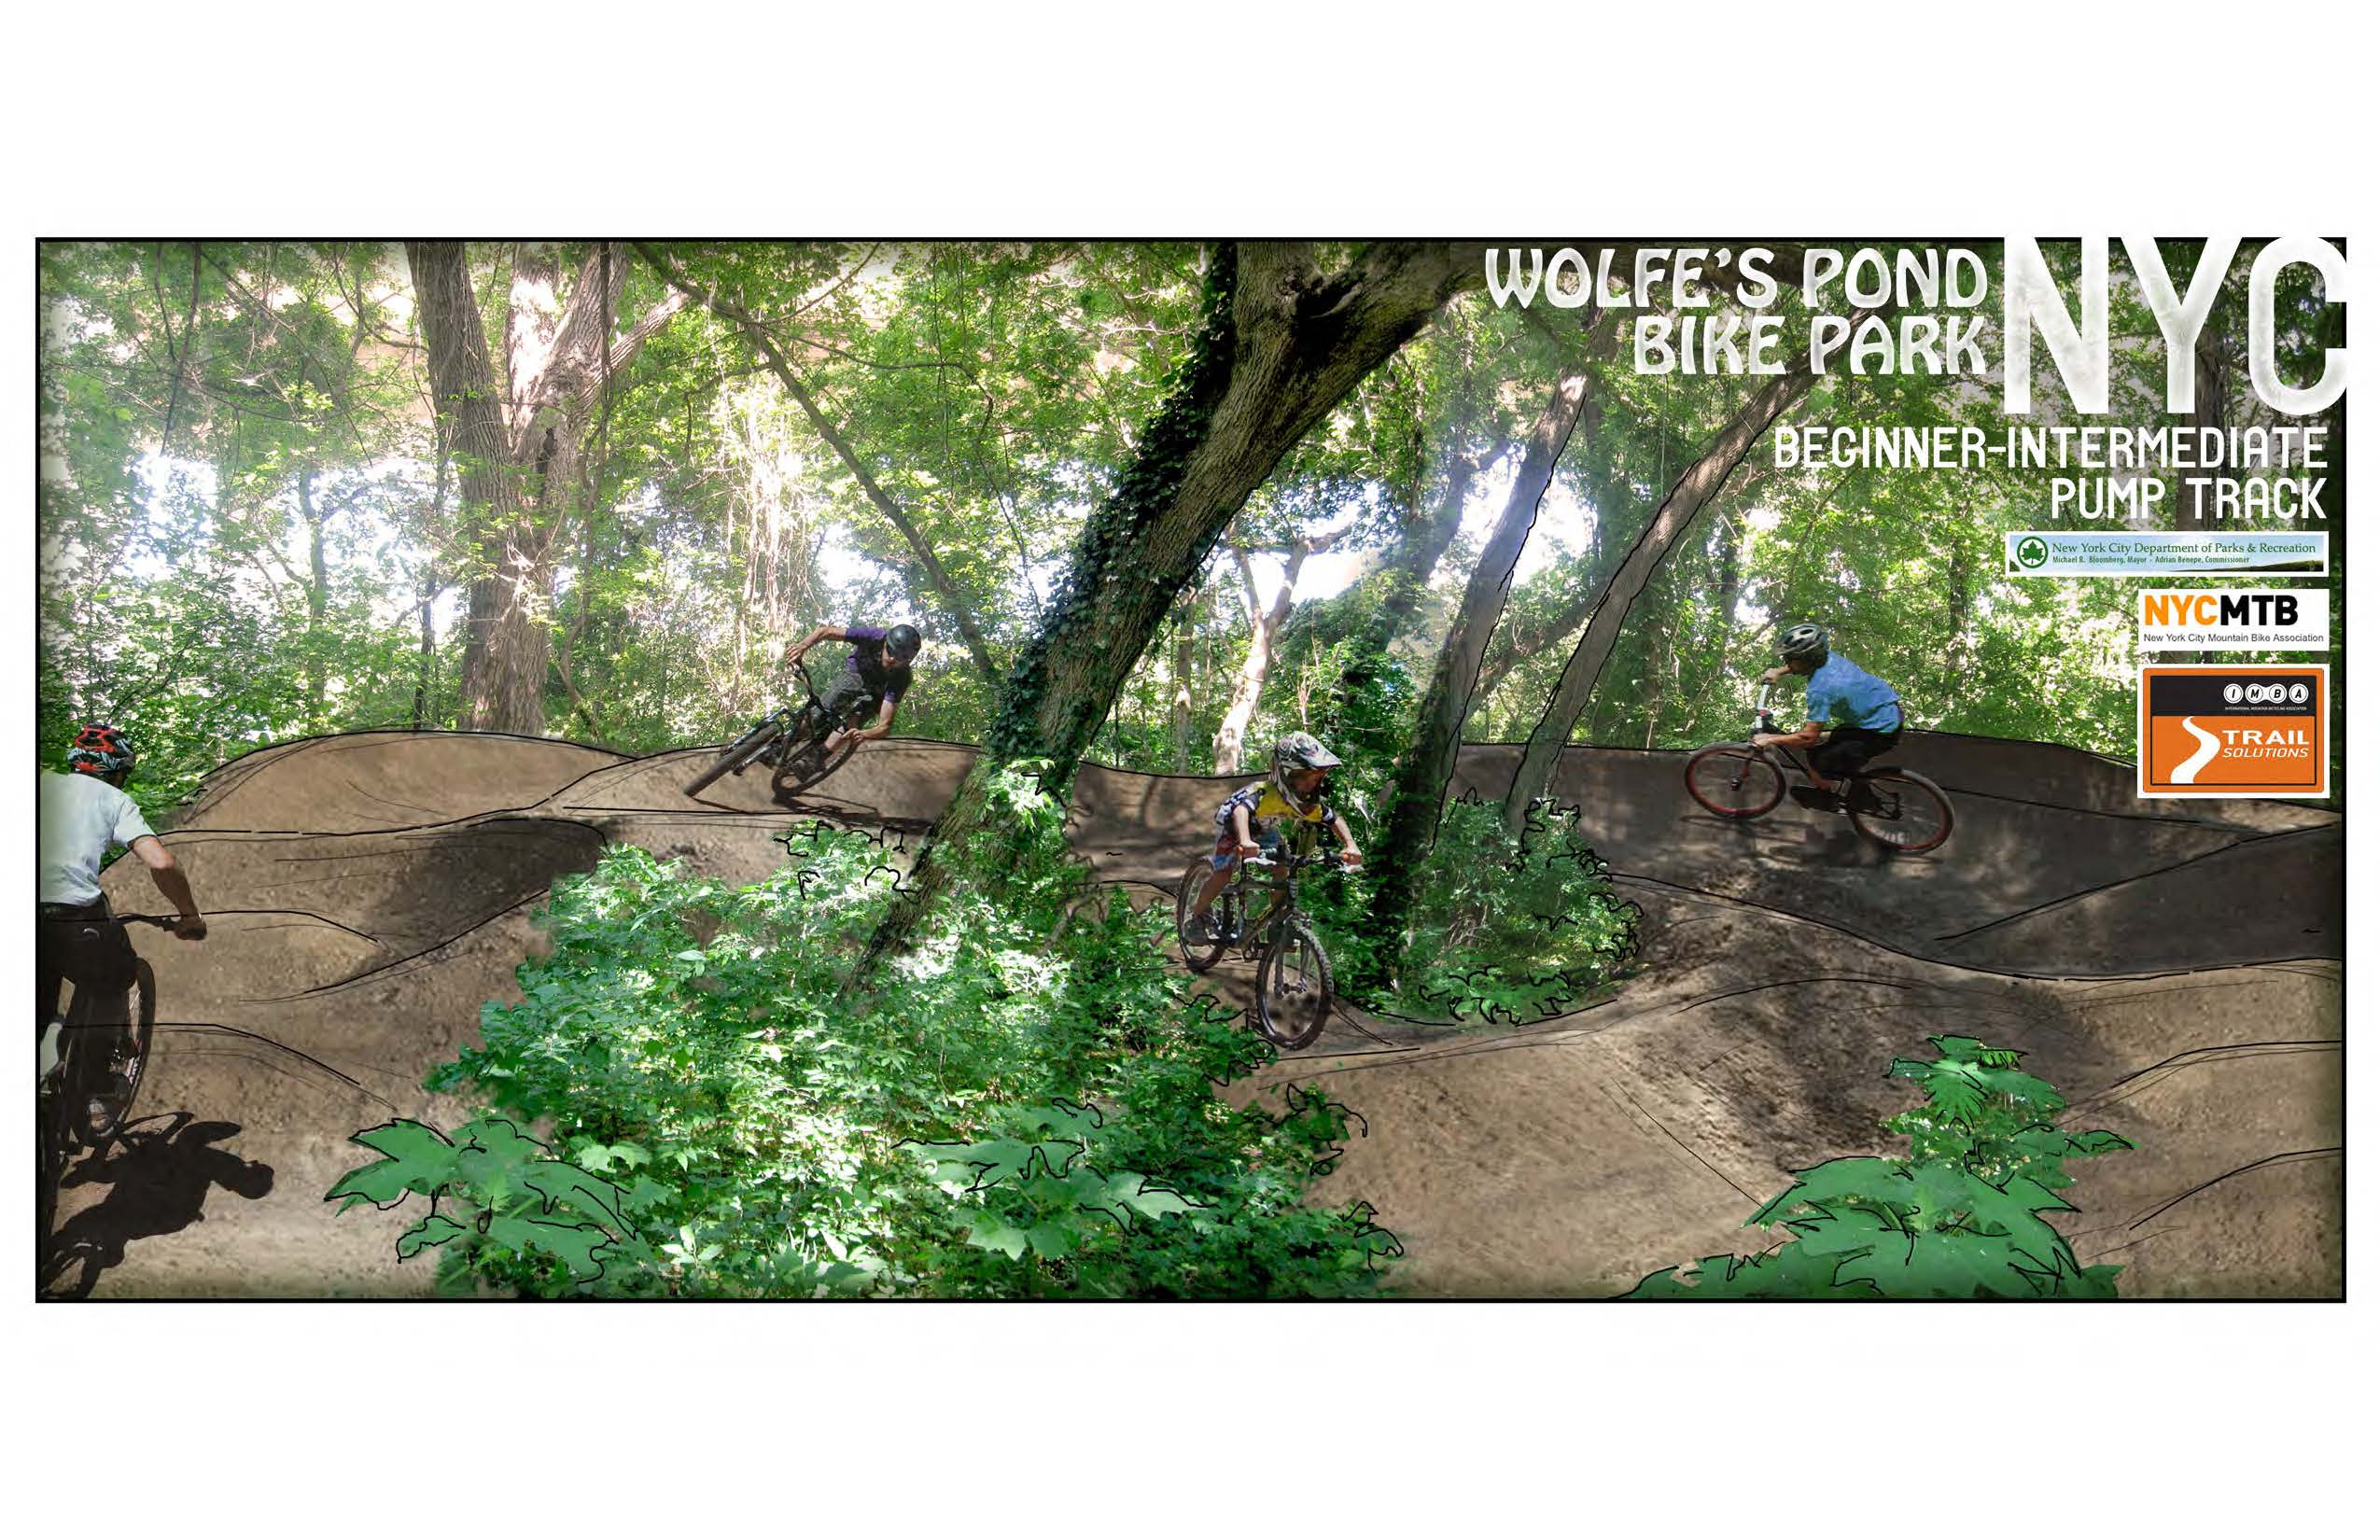 Wolfes Pond bike park